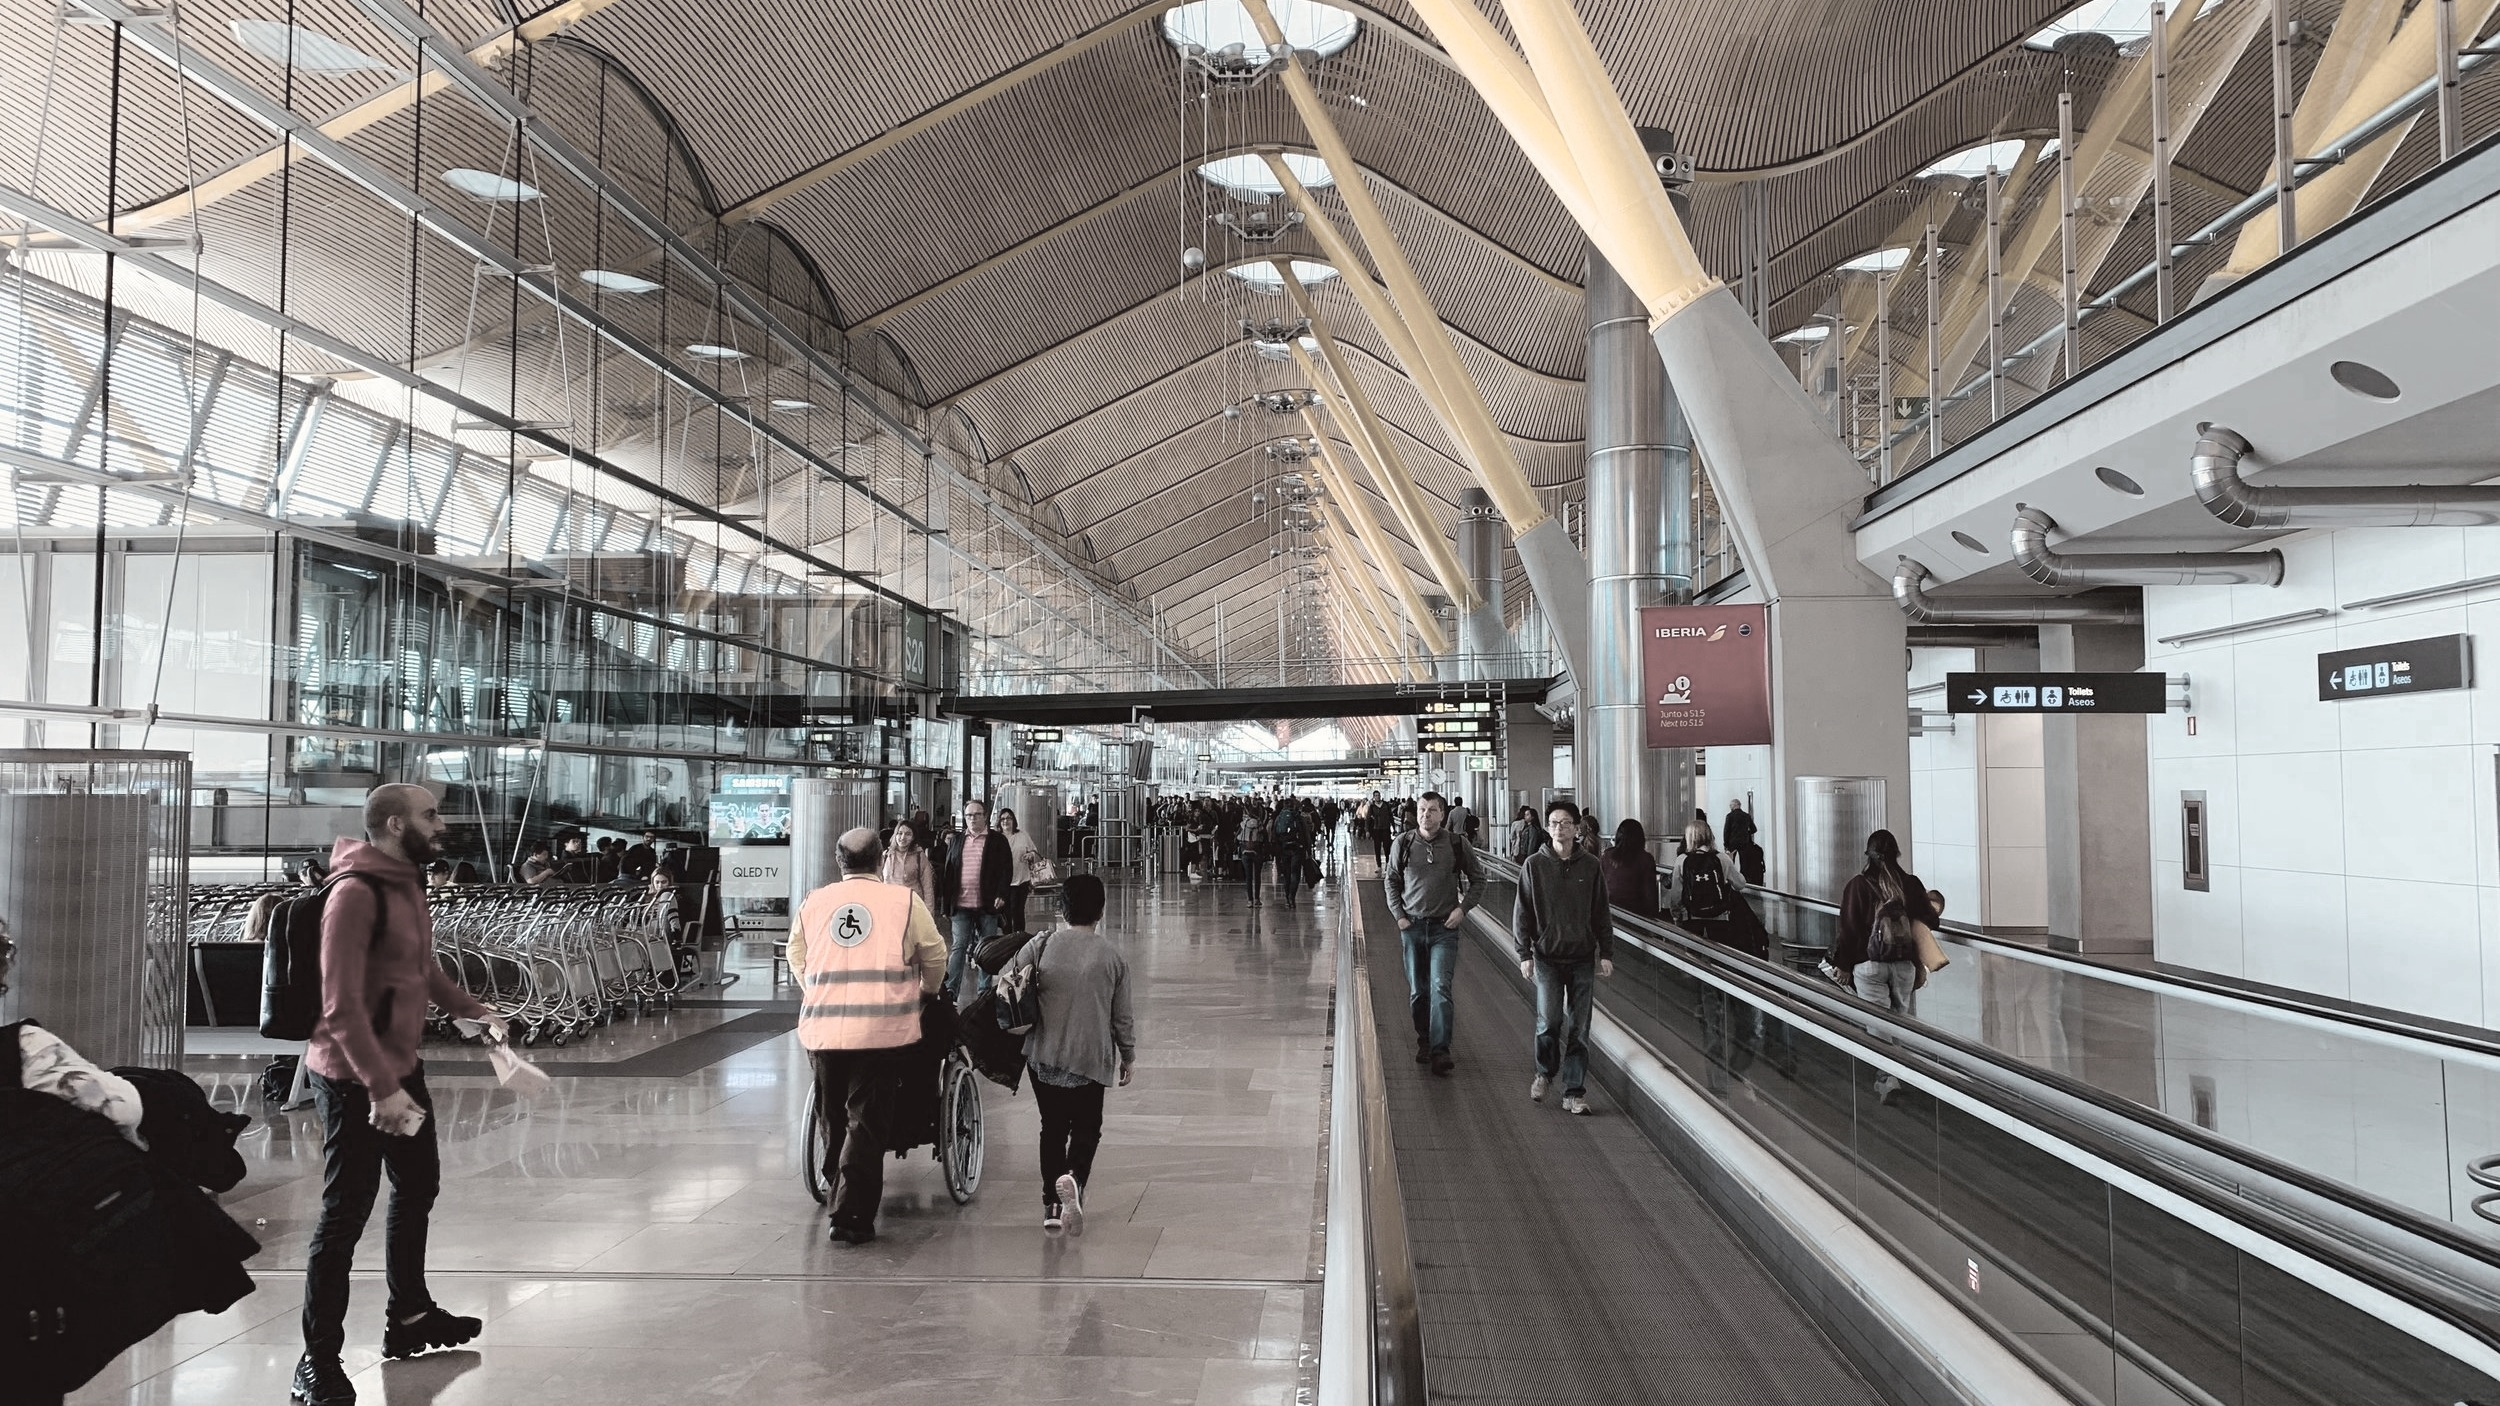 Airports - Conversation-led engagement for today's always connected travellers. Simplify info access & automate inbound enquiries. Engage time-conscious travellers in context-relevant ways on their Channel of choice